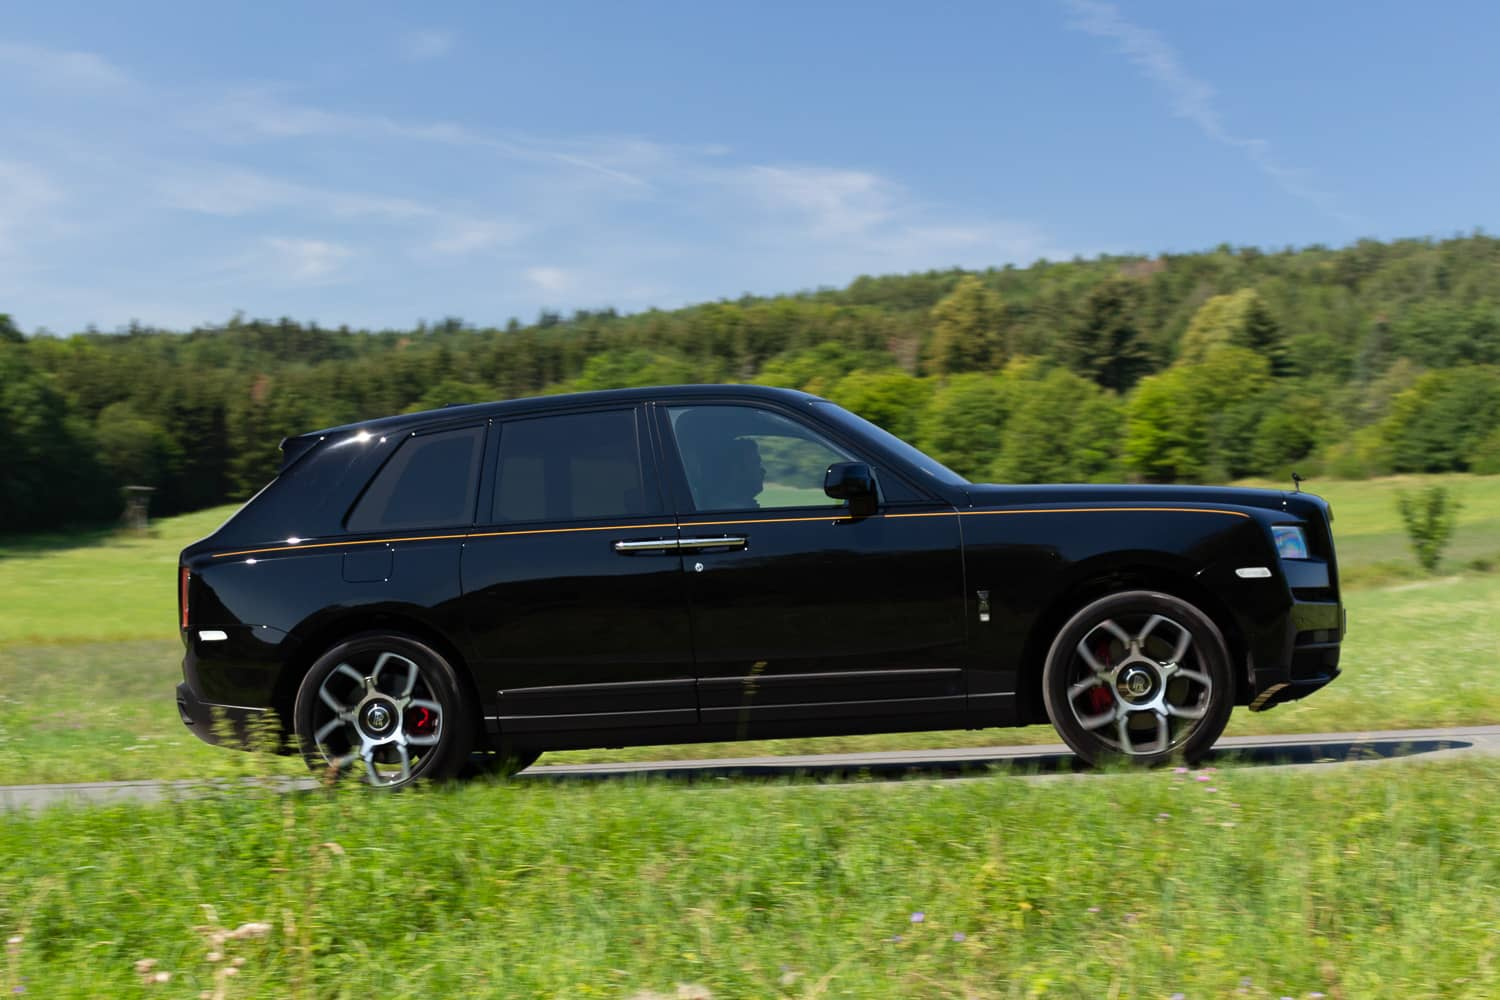 Rolls-Royce Cullinan Black Badge (19)